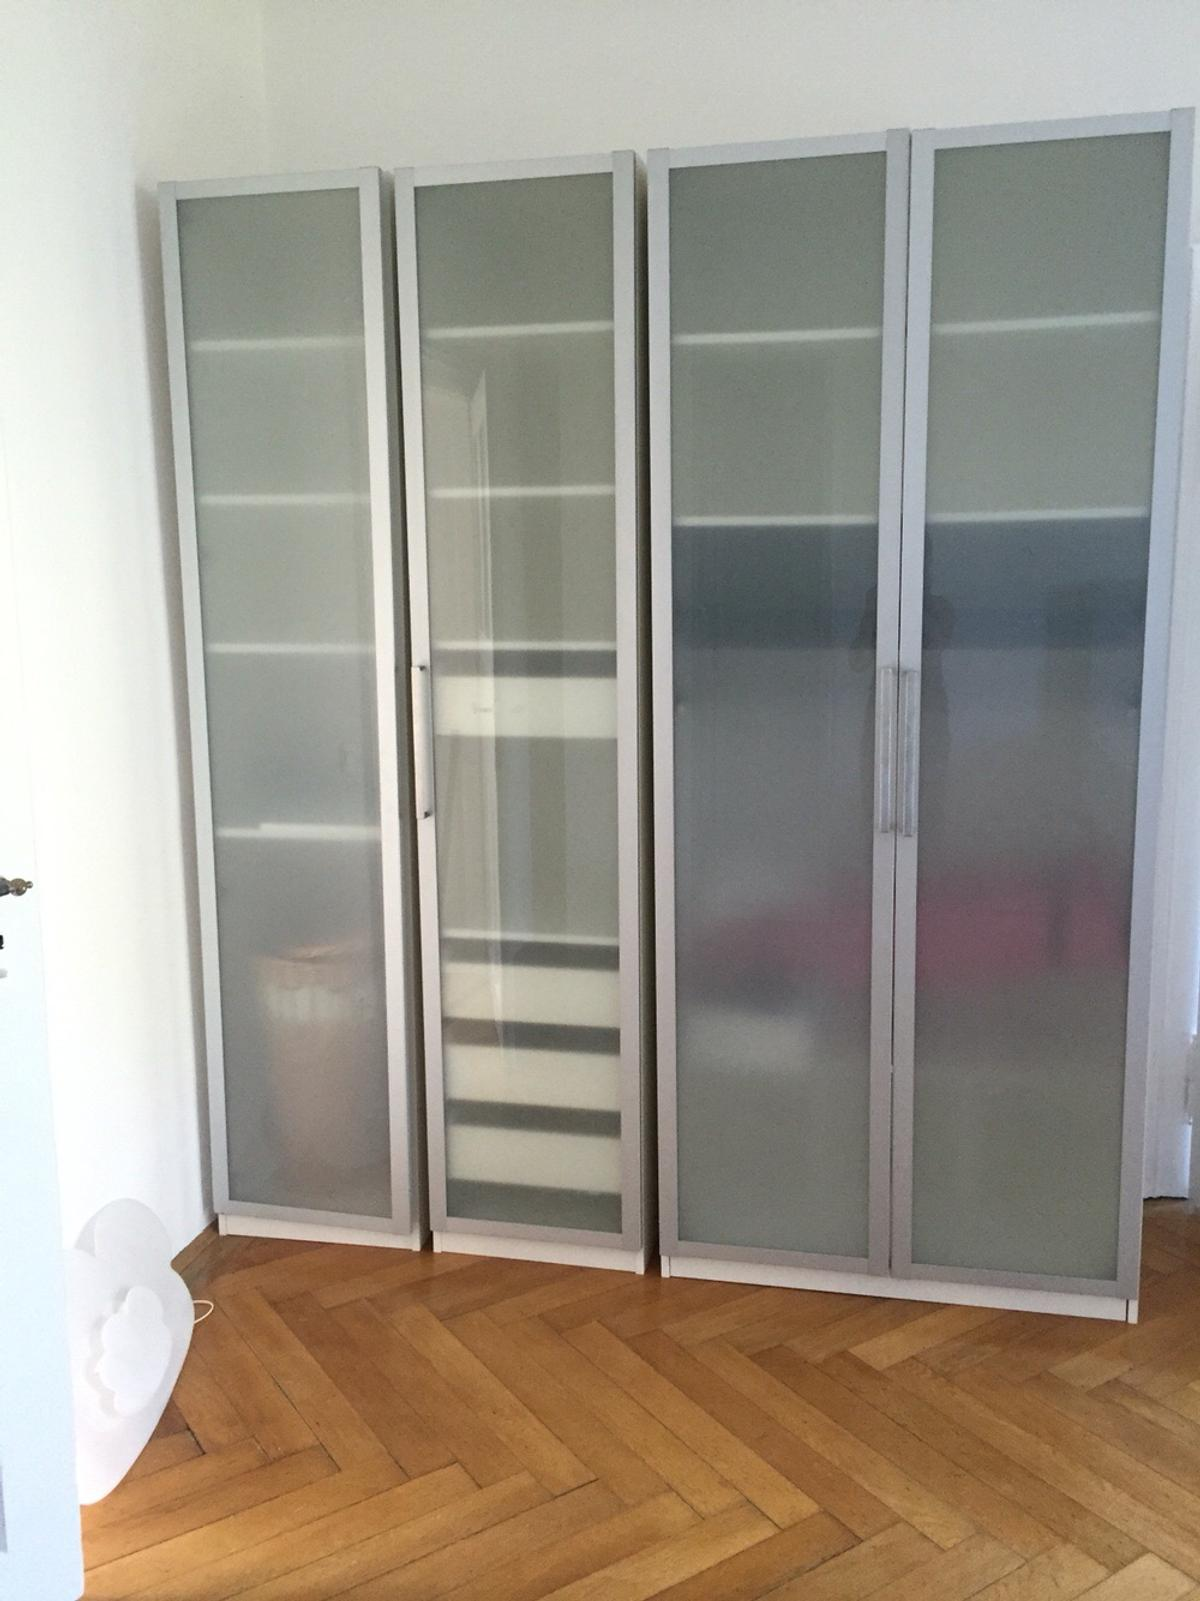 4 Ikea Pax Milchglas Turen 236 X 50 In 81737 Munchen For 120 00